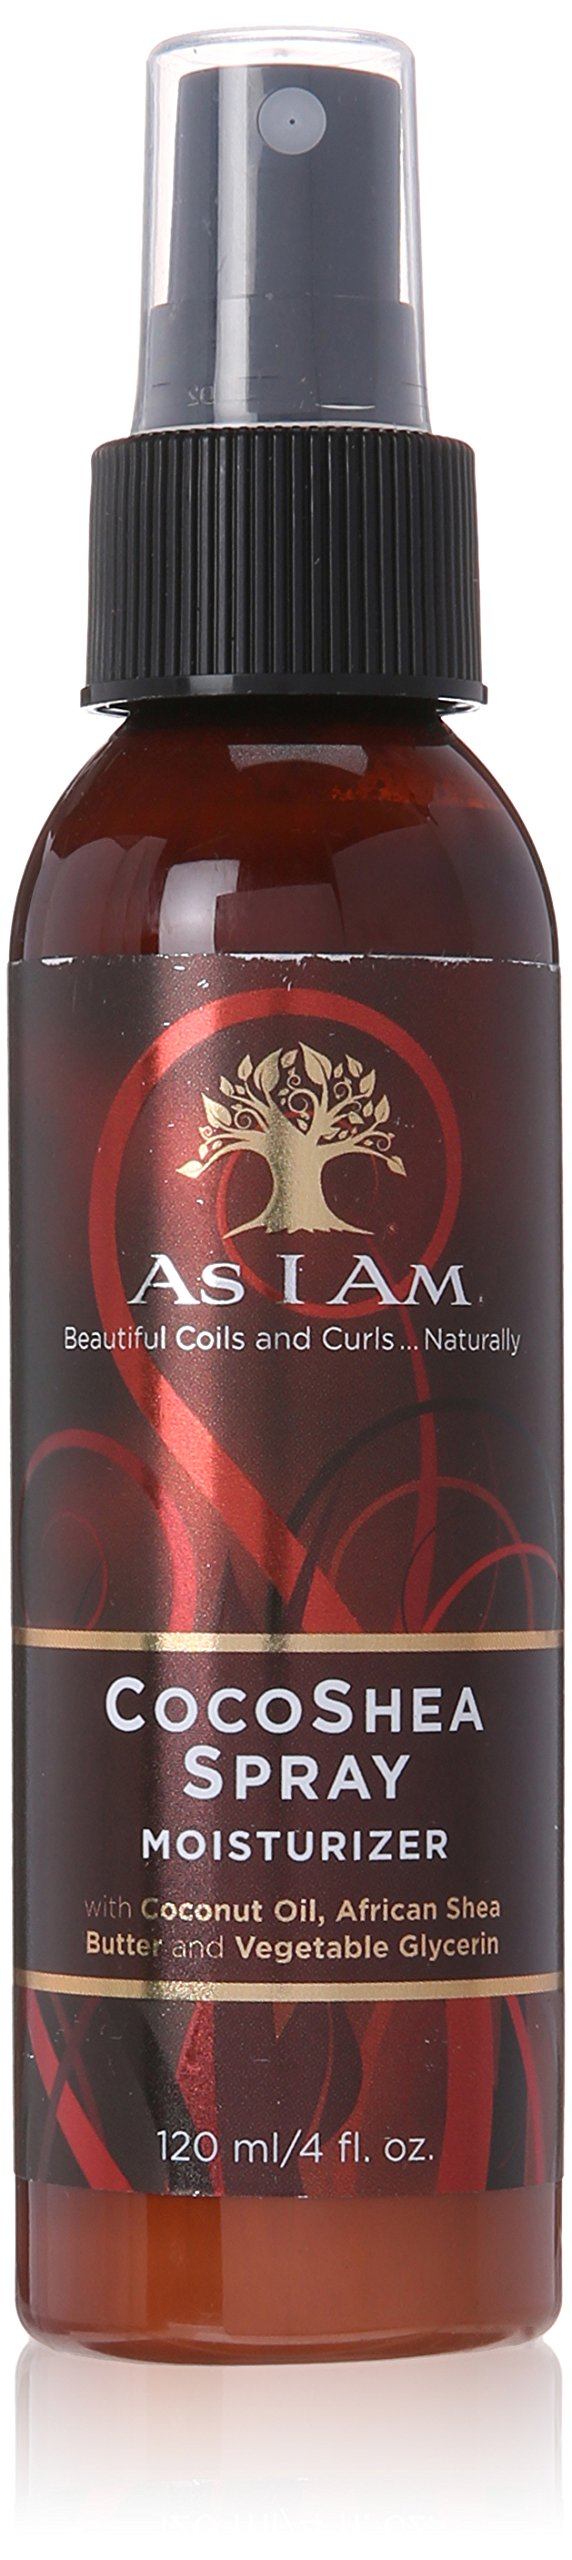 As I Am CocoShea Spray - 4 Ounce - Concentrated Nano Blend of Coconut Oil and African Shea Butter - Nourishes, Softens and Boosts Shine - Hydrates the Hair Shaft - Moisturizes Hair and Scalp